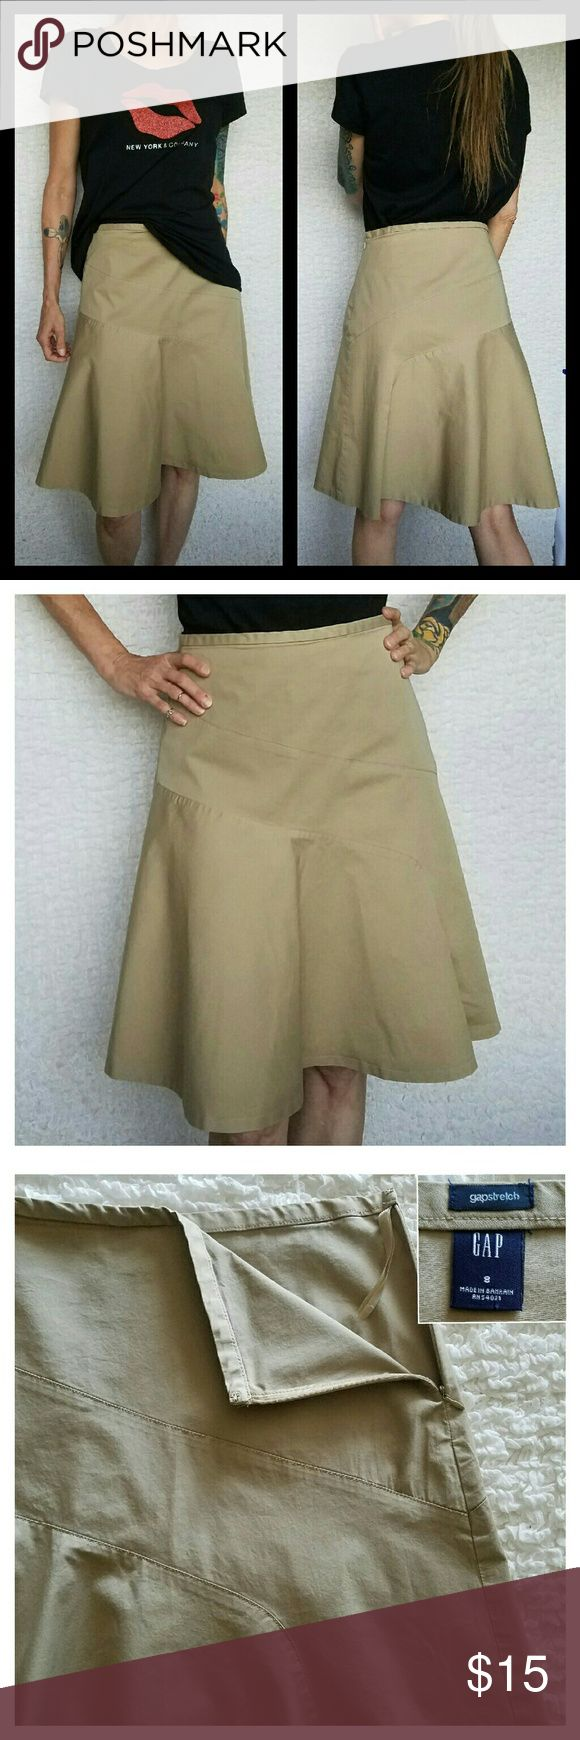 """Gap Stretch Bias Cut Fit & Flare Skirt - Beige Sweet and simple 97% cotton/ 3% lycra spandex fabric allows for a gentle stretch for a perfect fit every time. Cut on the bias for fullness without gathers. Clean feminine lines. Hidden side zipper.  Laying flat: Waist 15"""" Hips 22"""" Length 24""""  New York & Co. tee is for sale on a separate listing. Gap Skirts Midi"""